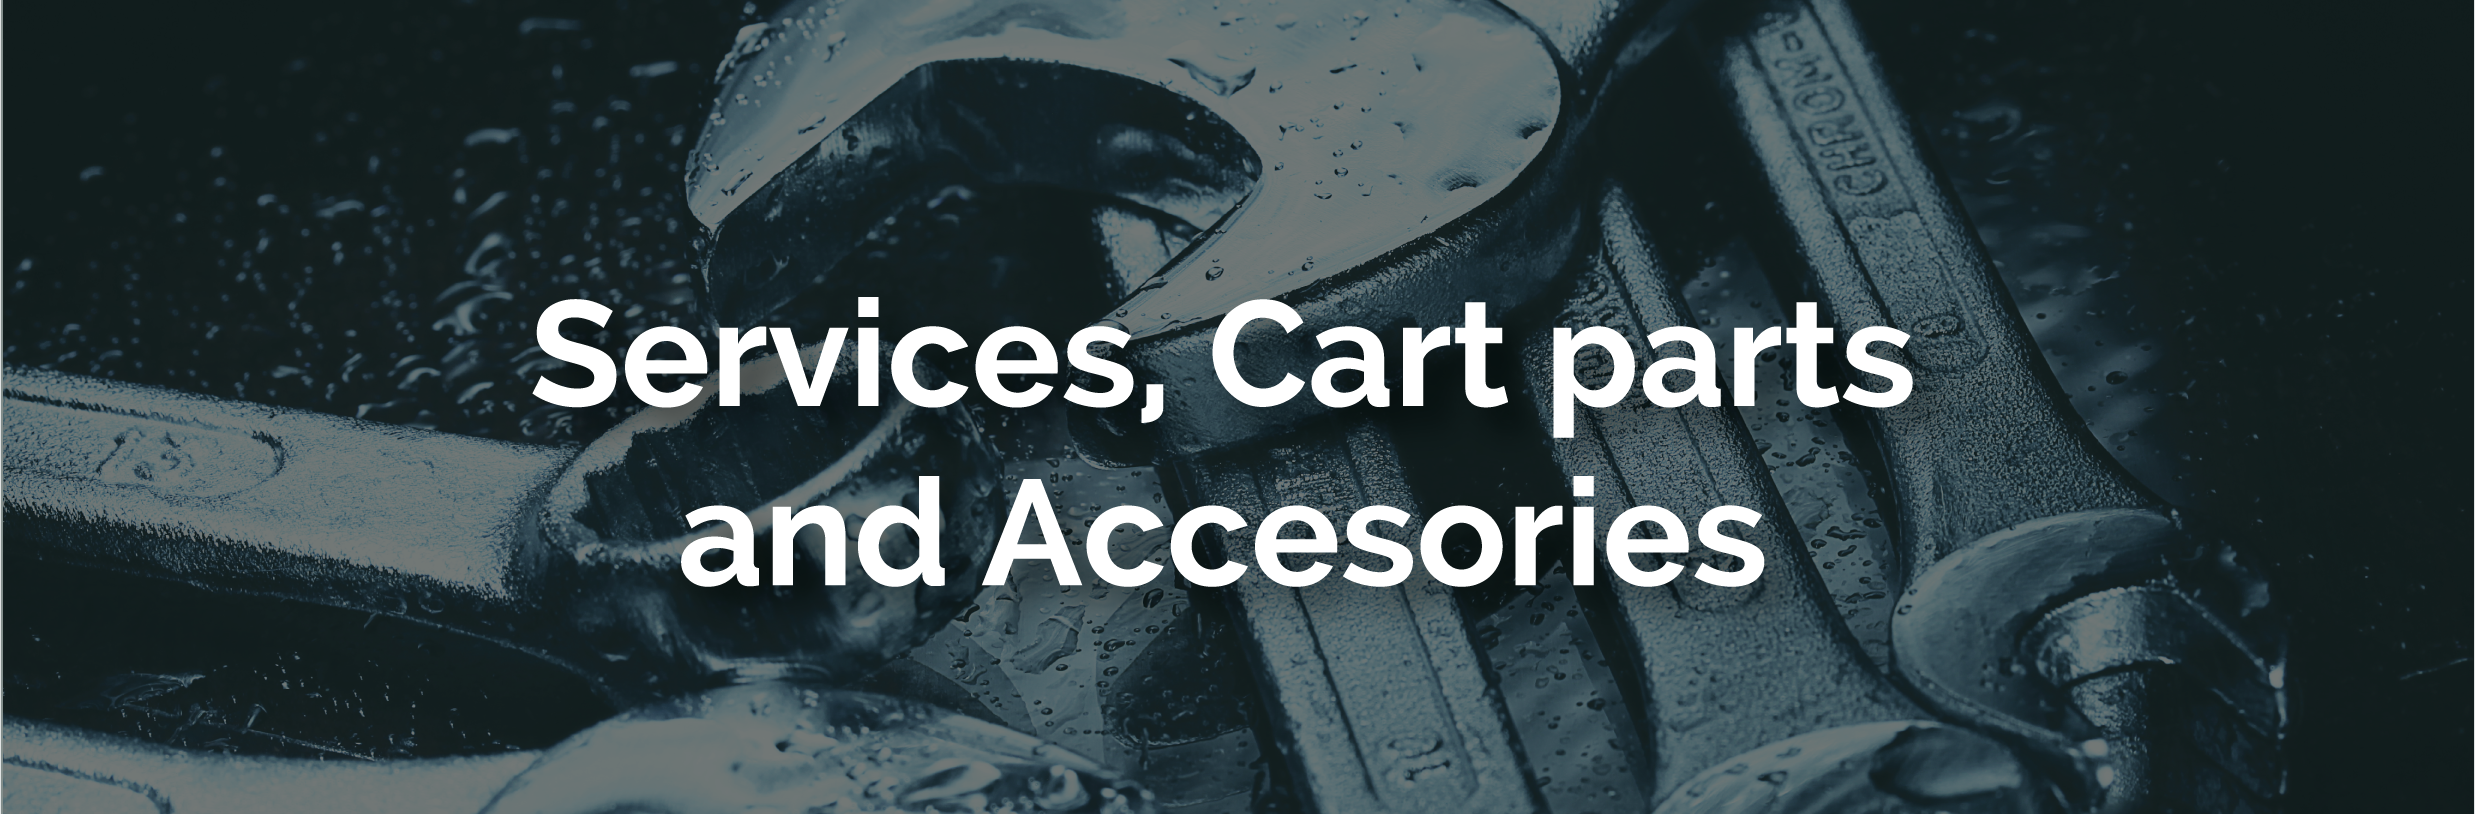 Services,-car-parts-and-accesories-